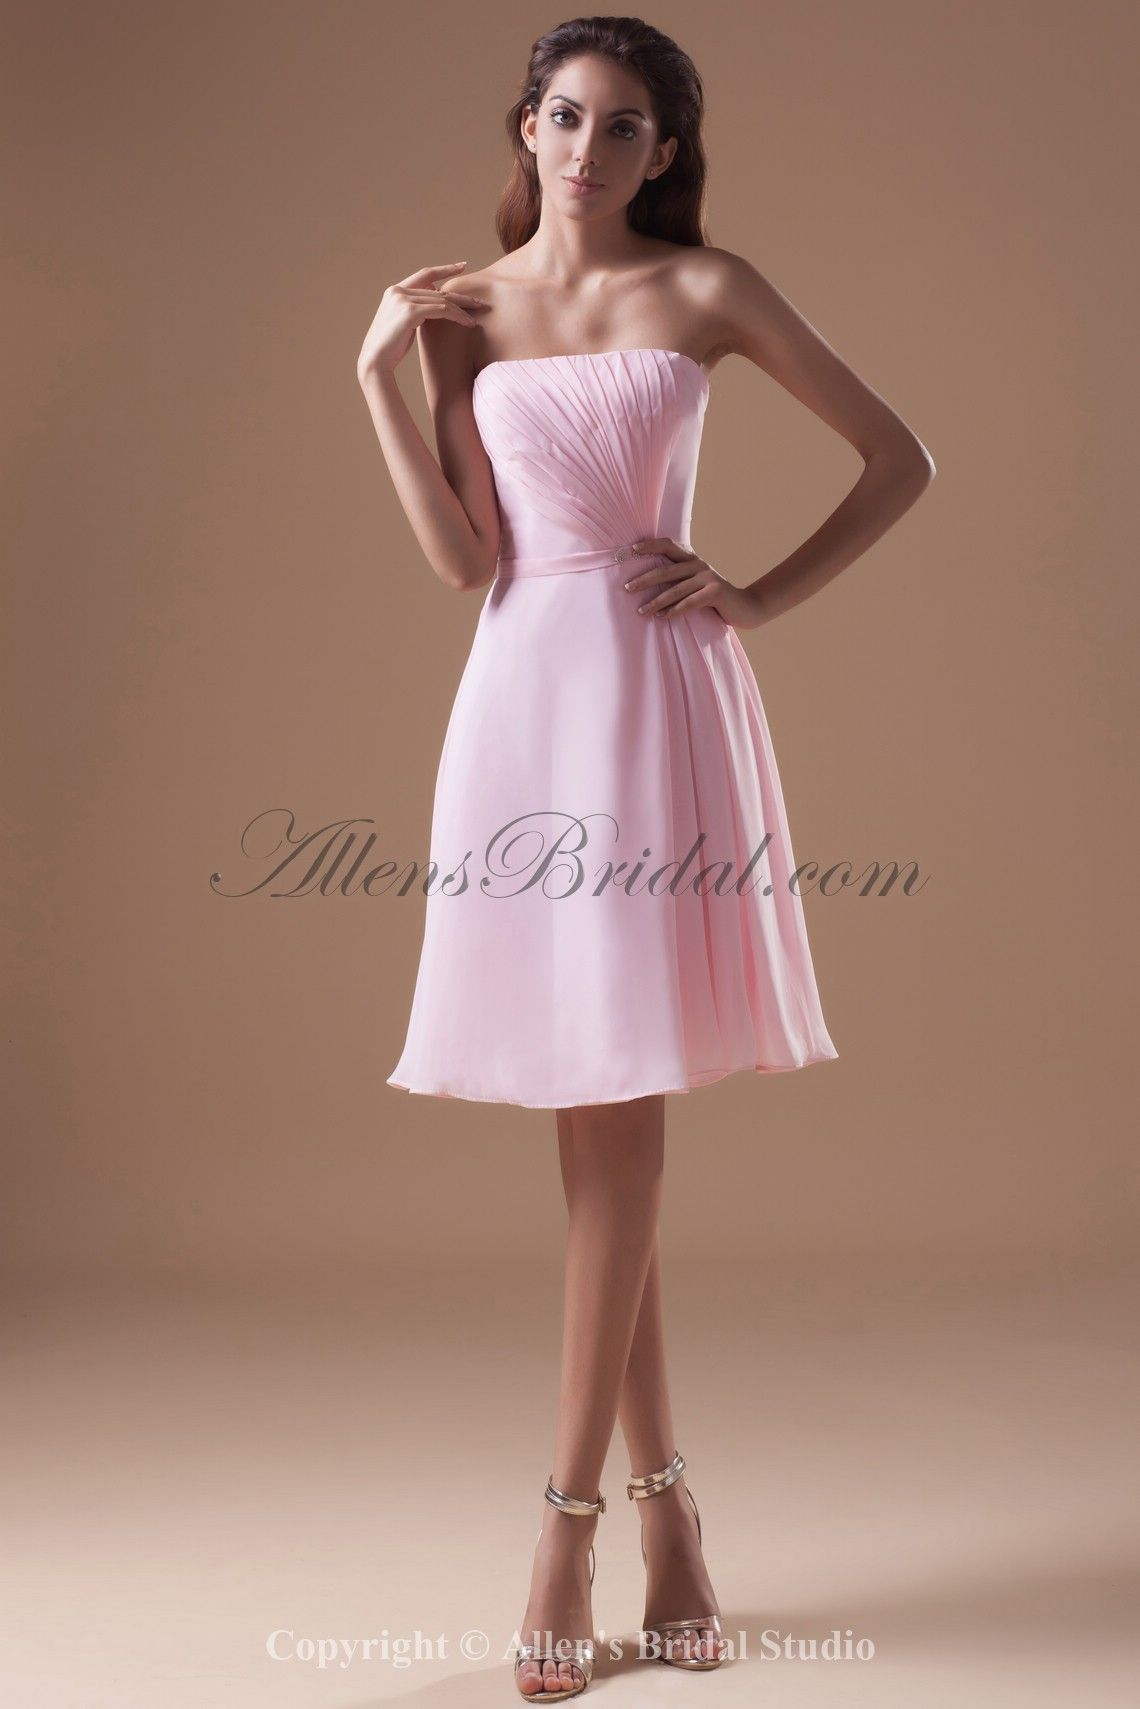 Chiffon Strapless Neckline Knee Length Column Prom Dress on sale at affordable prices, buy Chiffon Strapless Neckline Knee Length Column Prom Dress at AllensBridal.com now!